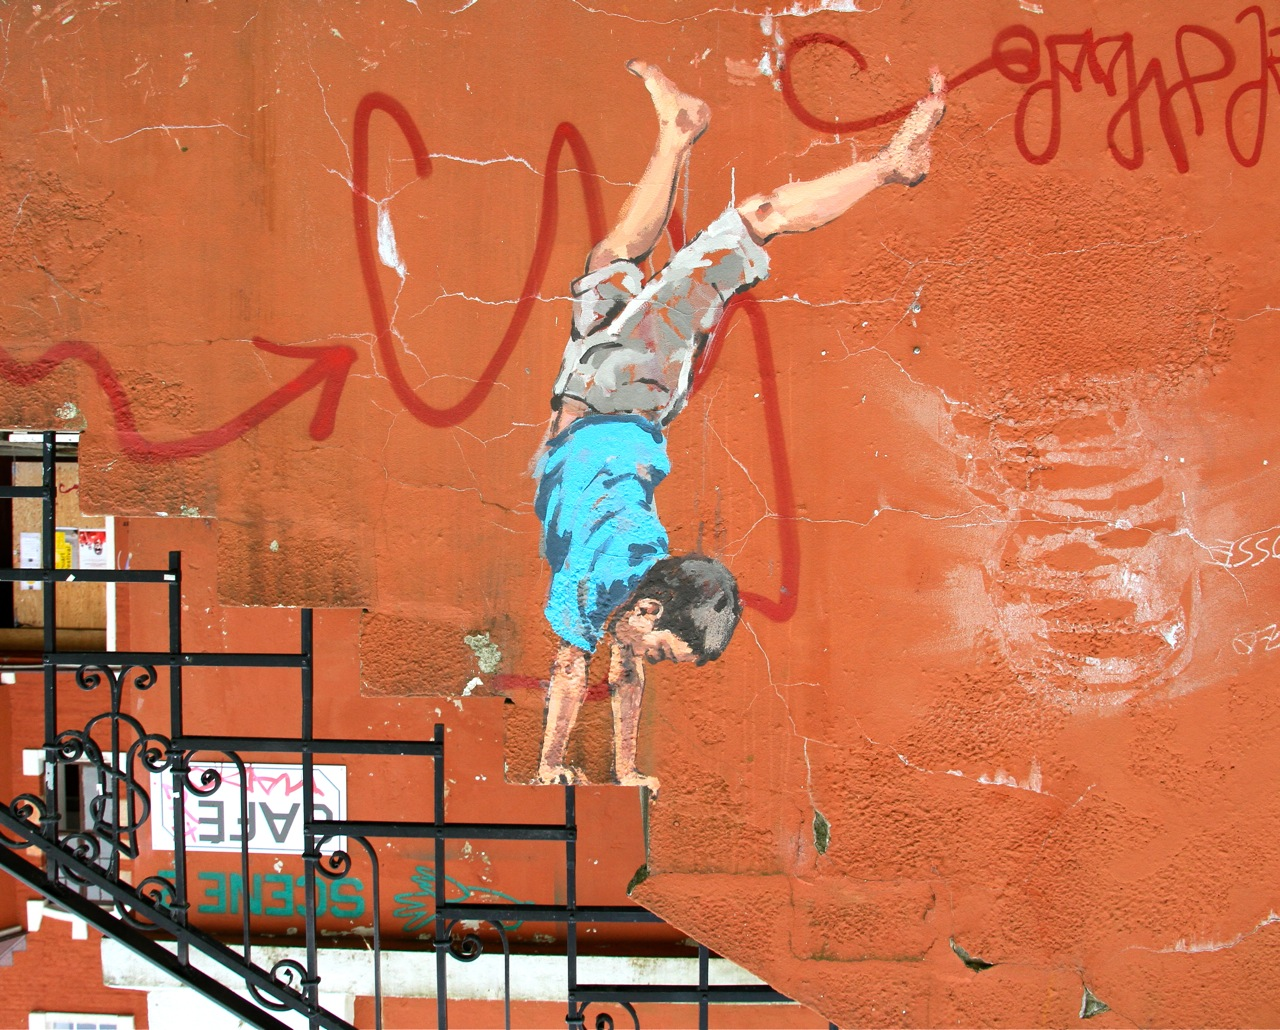 Nuart 2013: Street Pieces, Part 2: Ernest Zacharevic IMG_1420.jpg